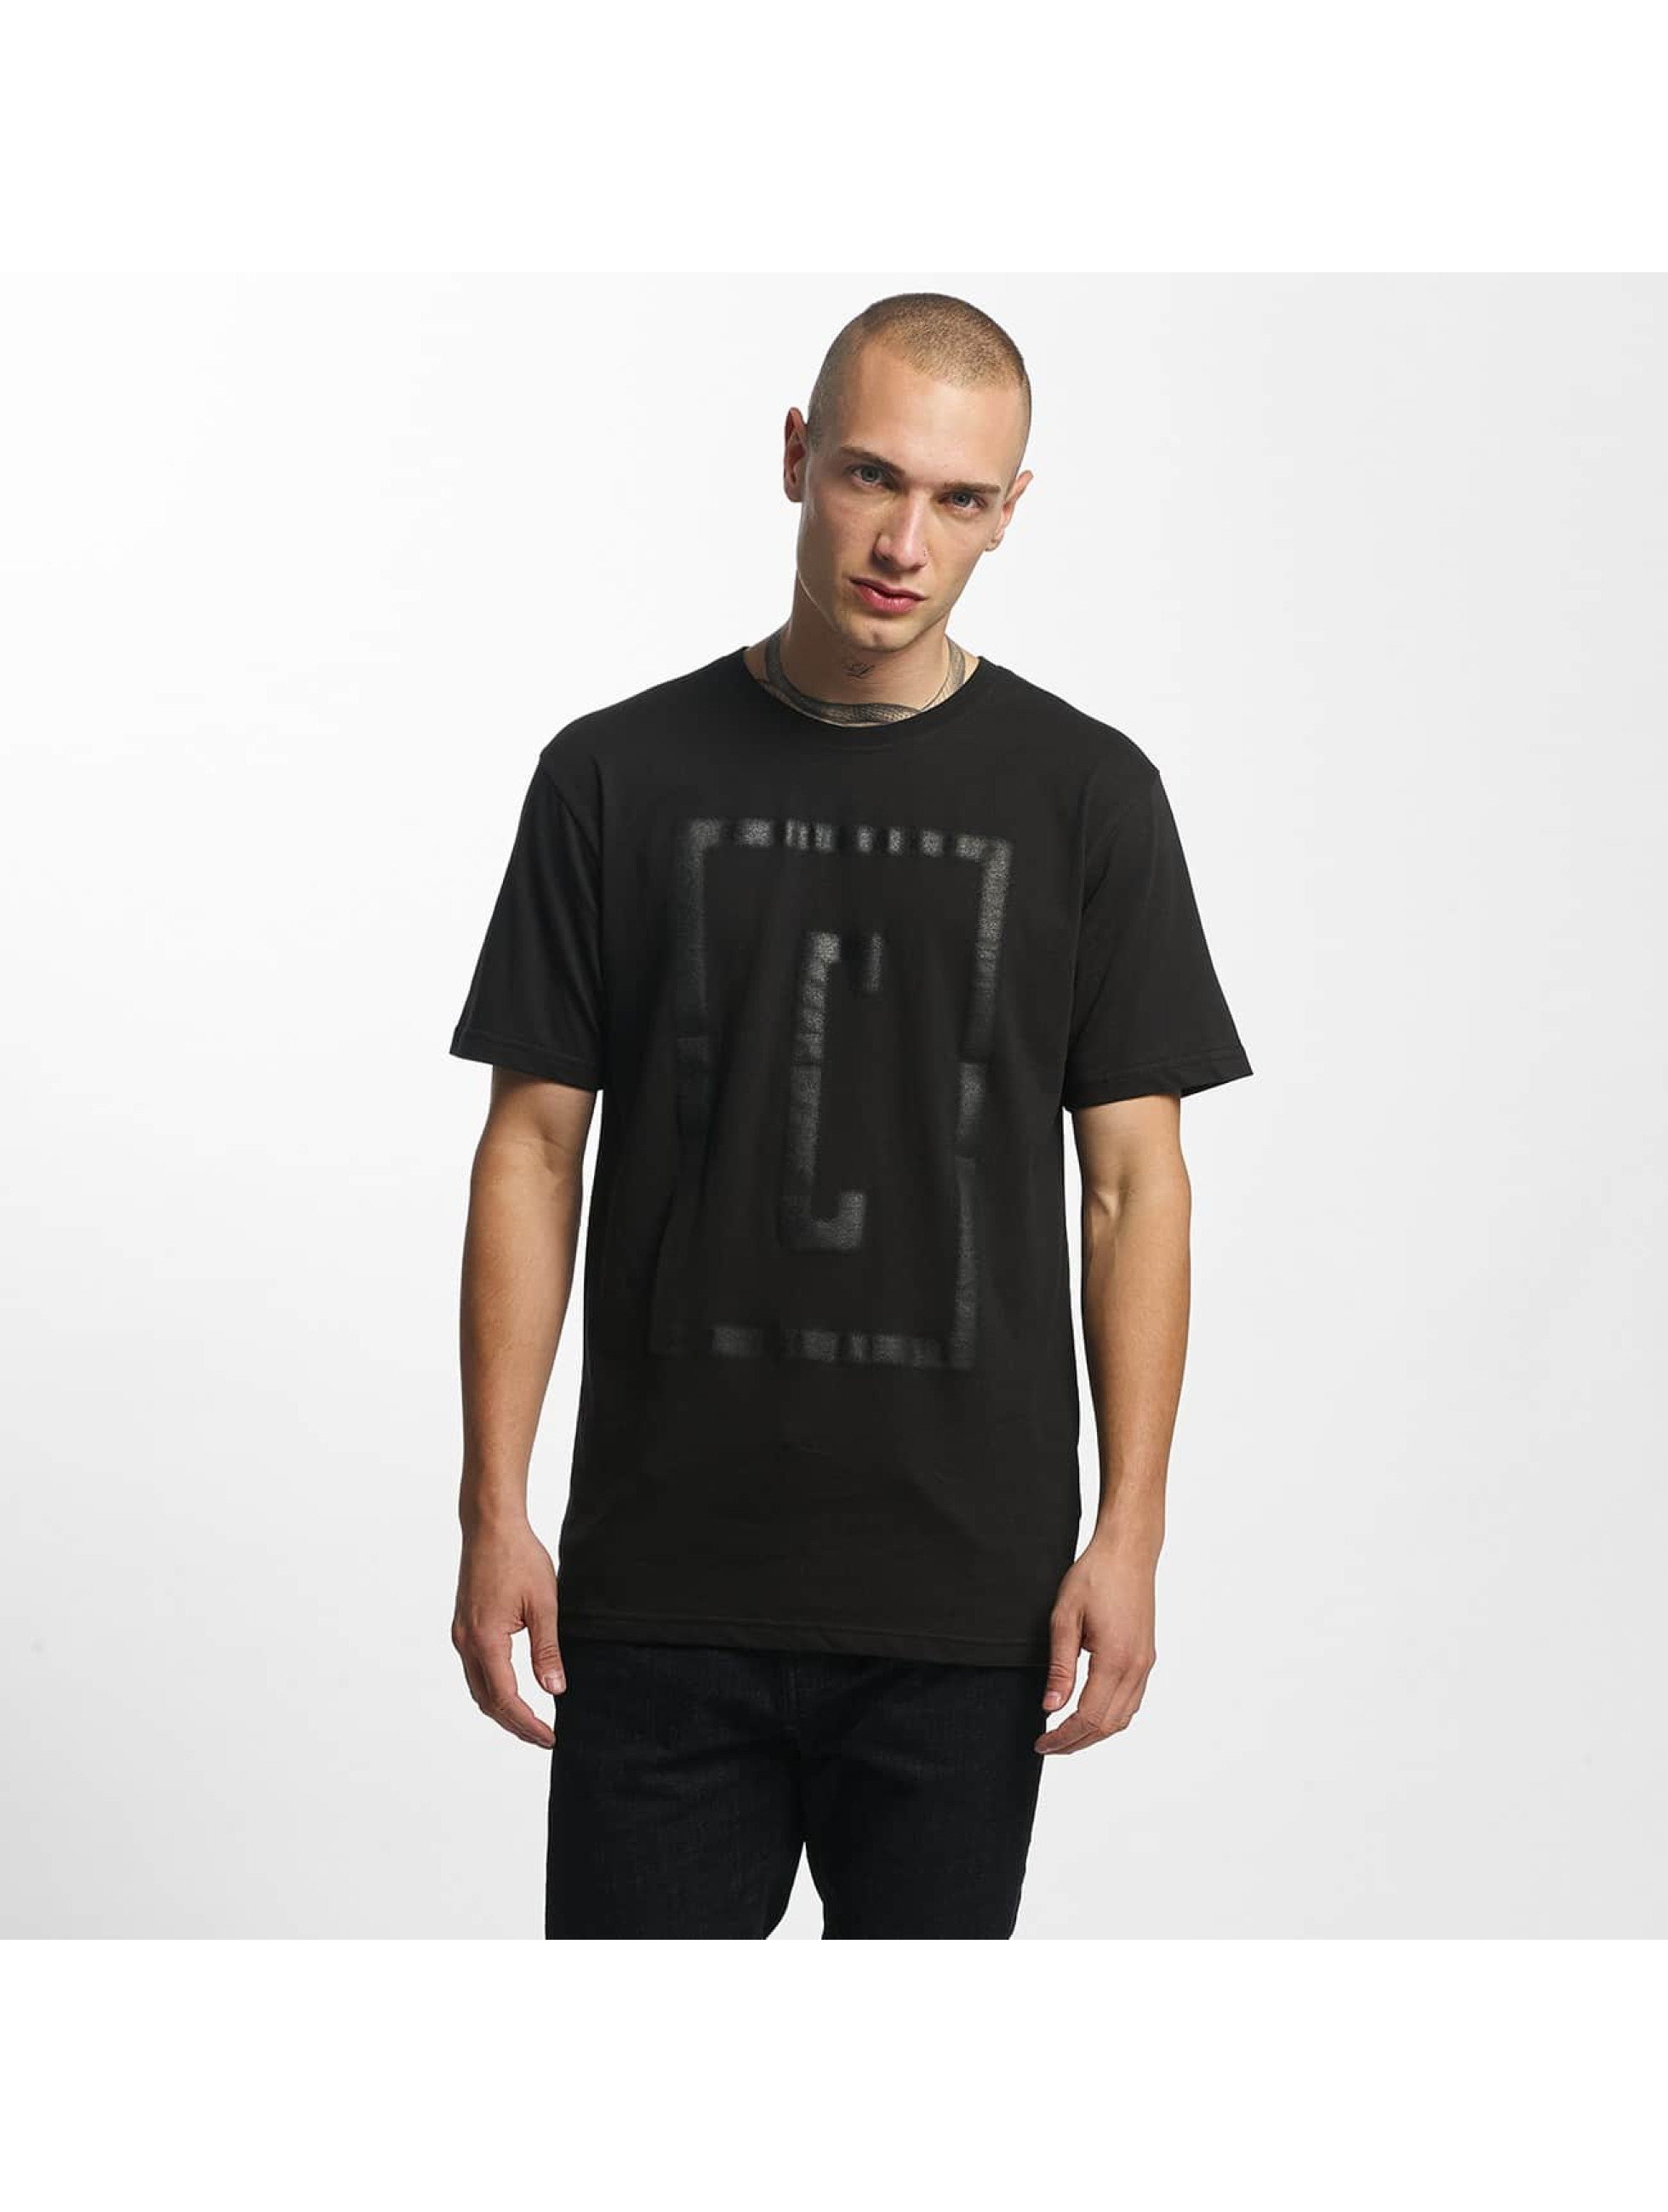 Cyprime / T-Shirt Lawrencium in black XL